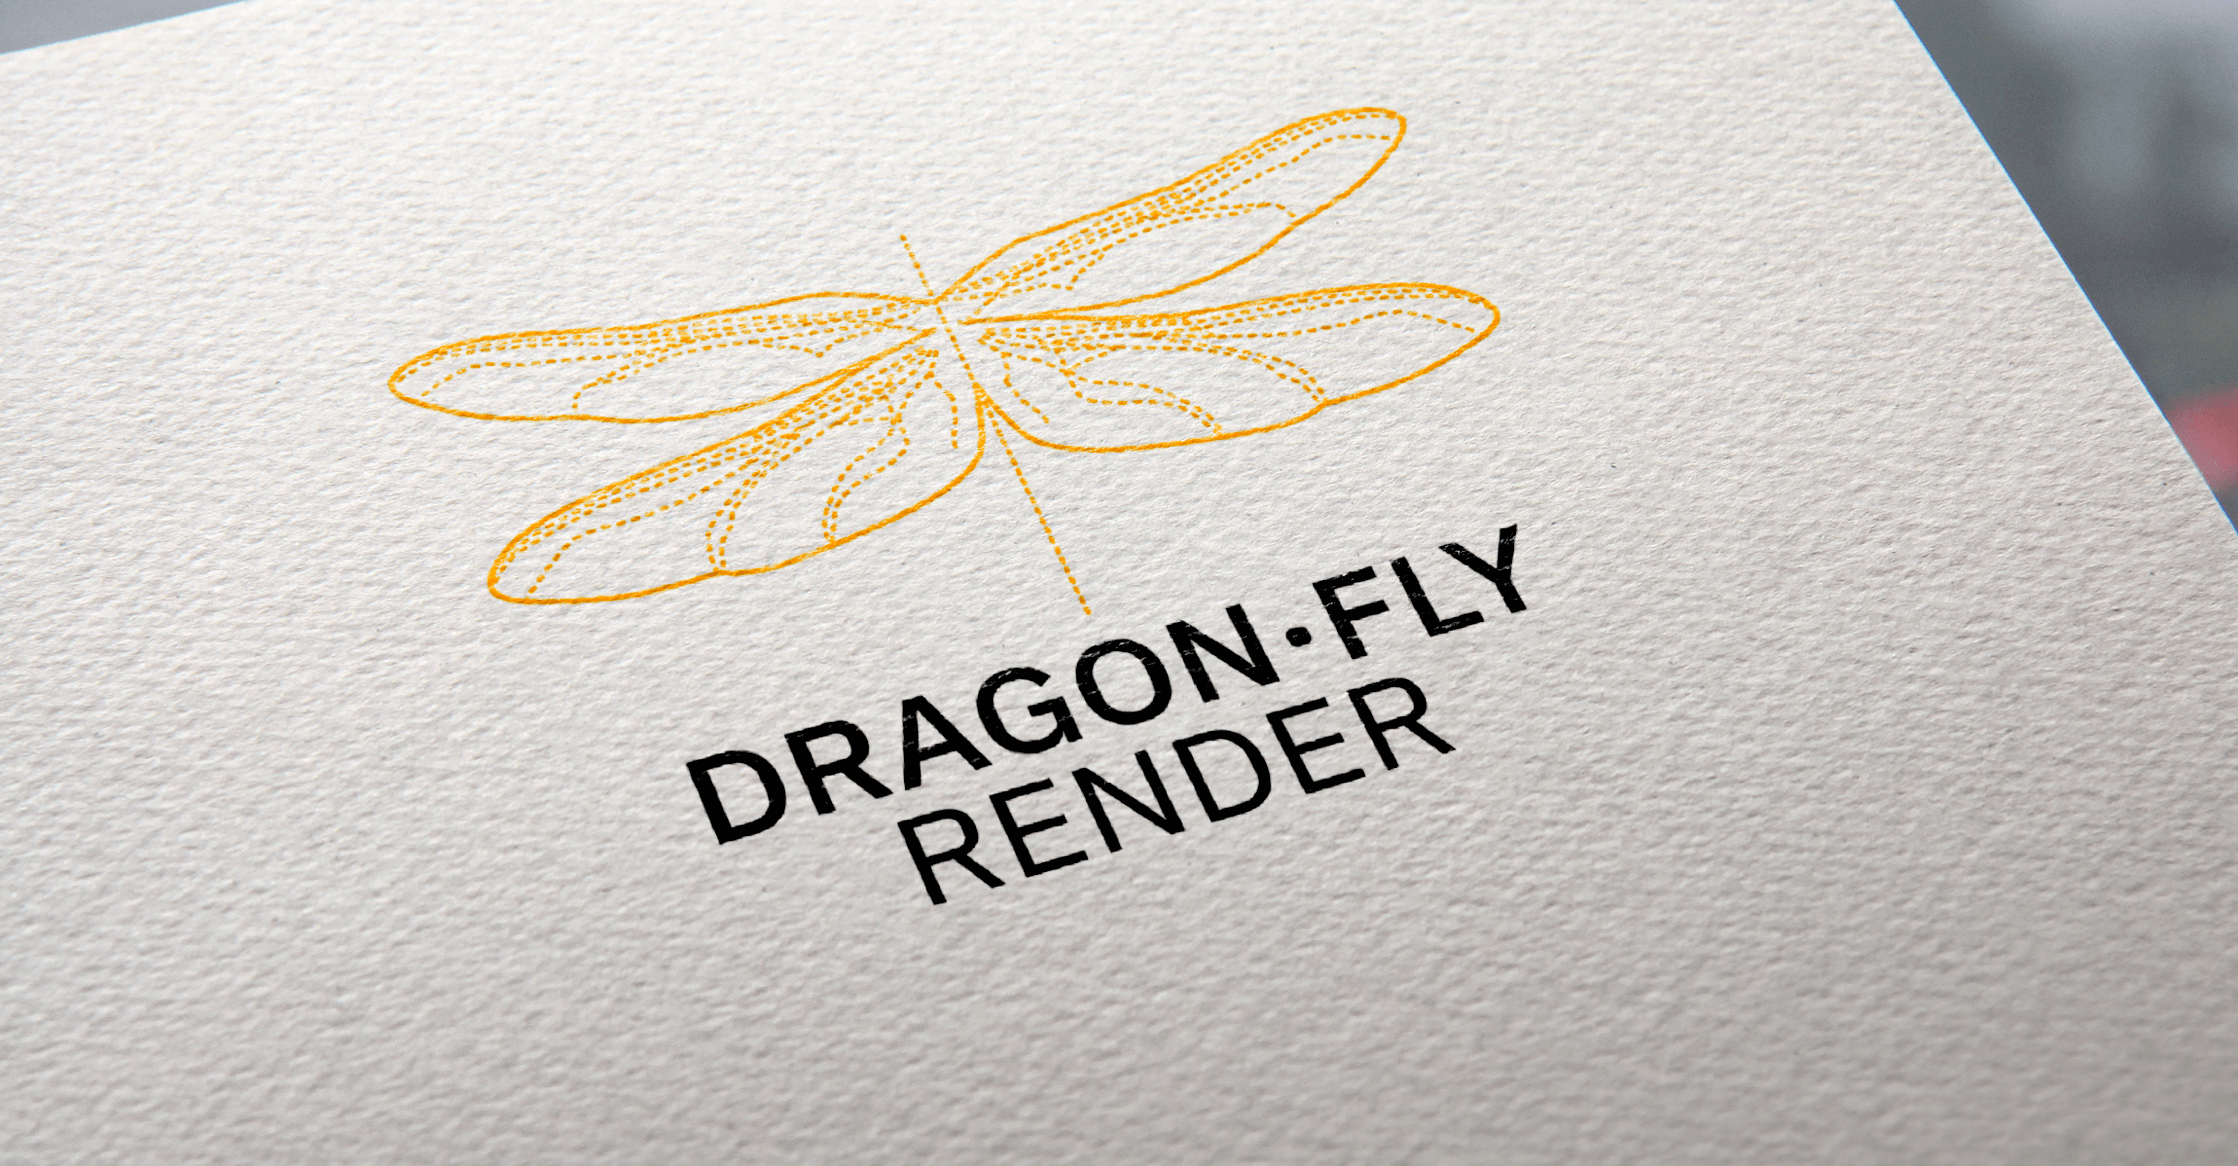 Dragon-fly Render, logotipo | Ideamatic